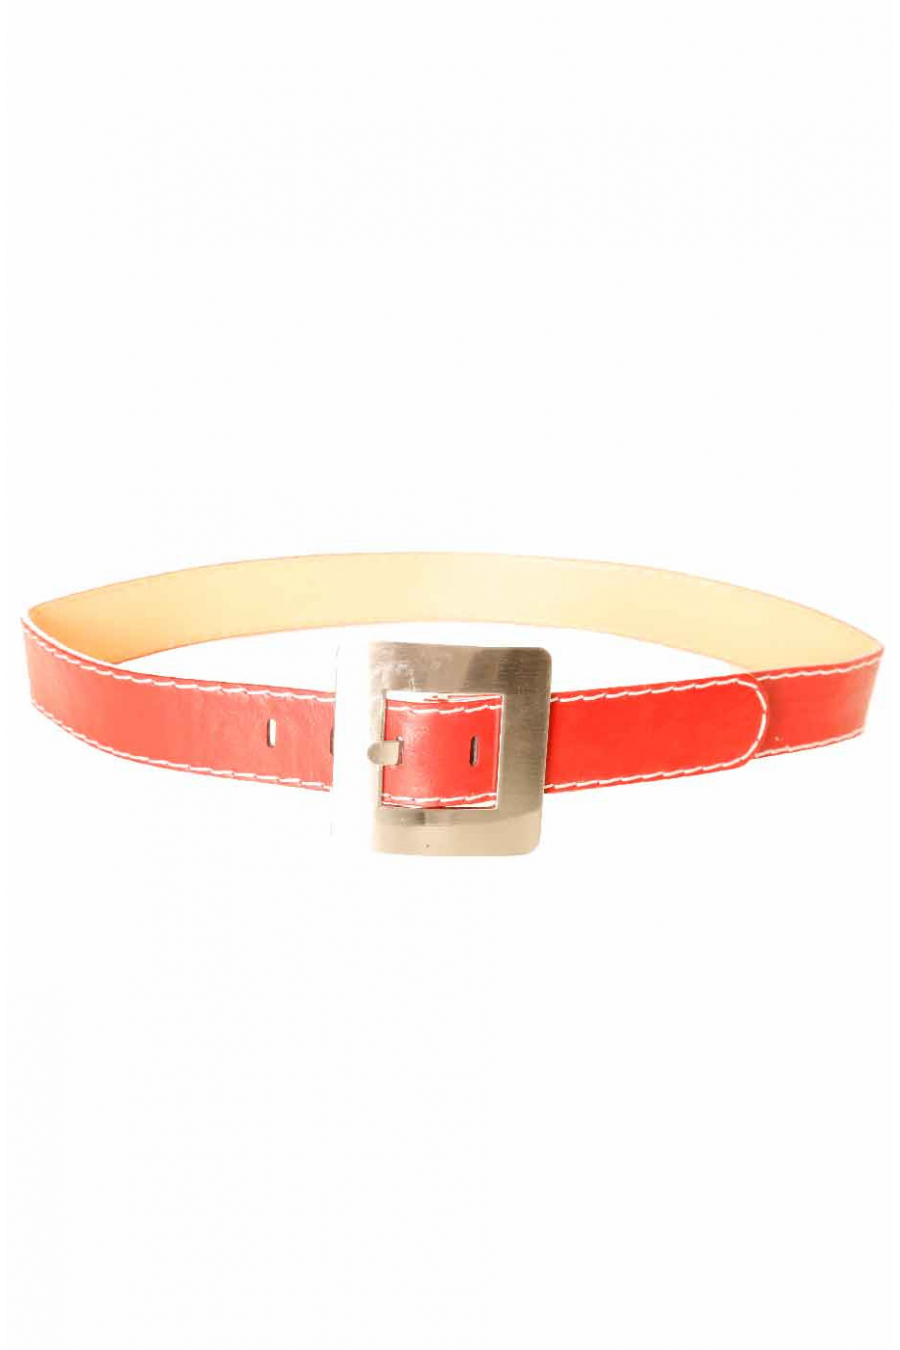 Red belt with white stitching with square buckle CE 504